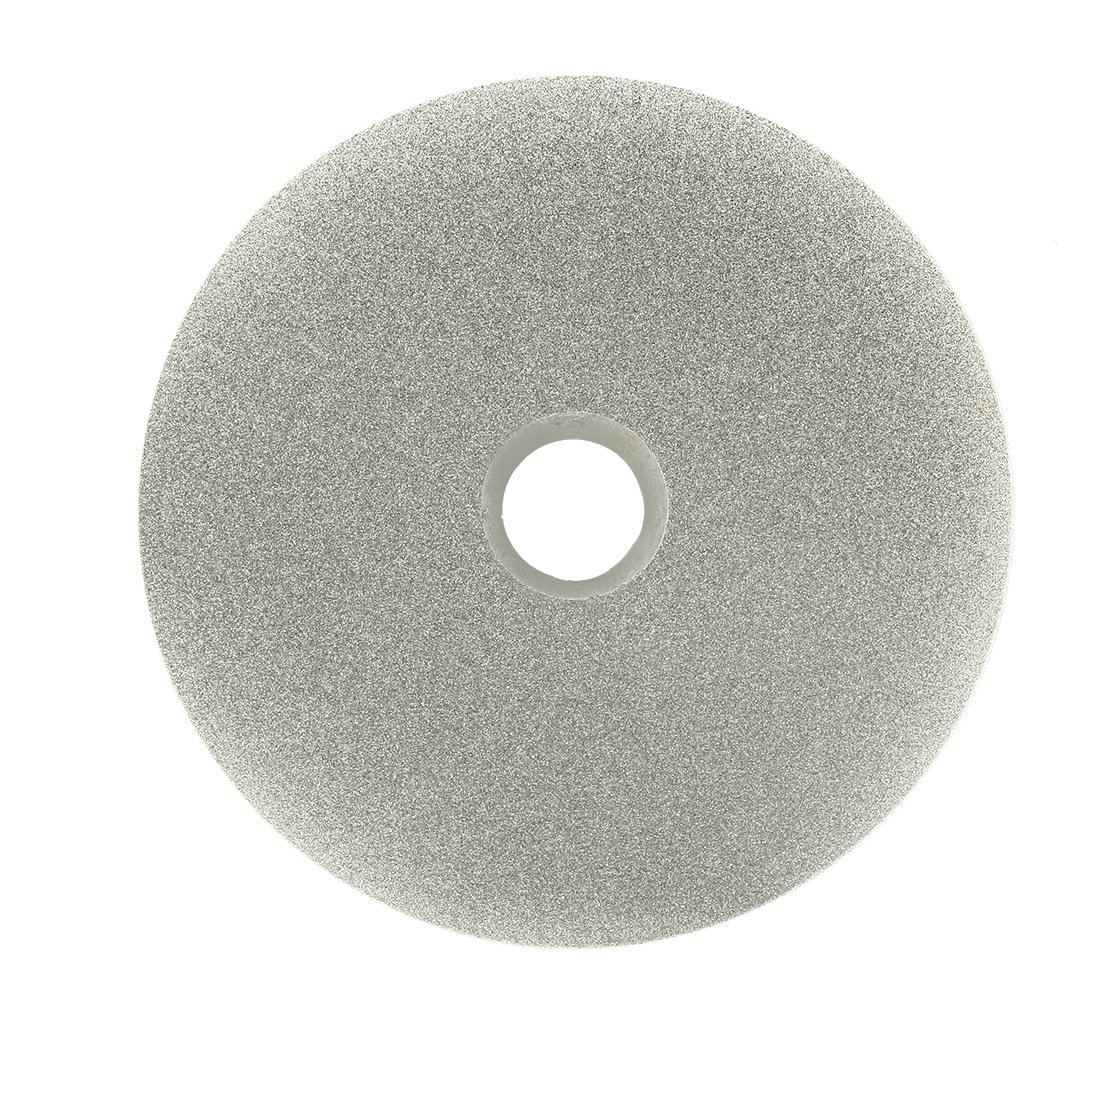 uxcell 100mm 4-inch Grit 240 Diamond Coated Flat Lap Disk Wheel Grinding Sanding Disc